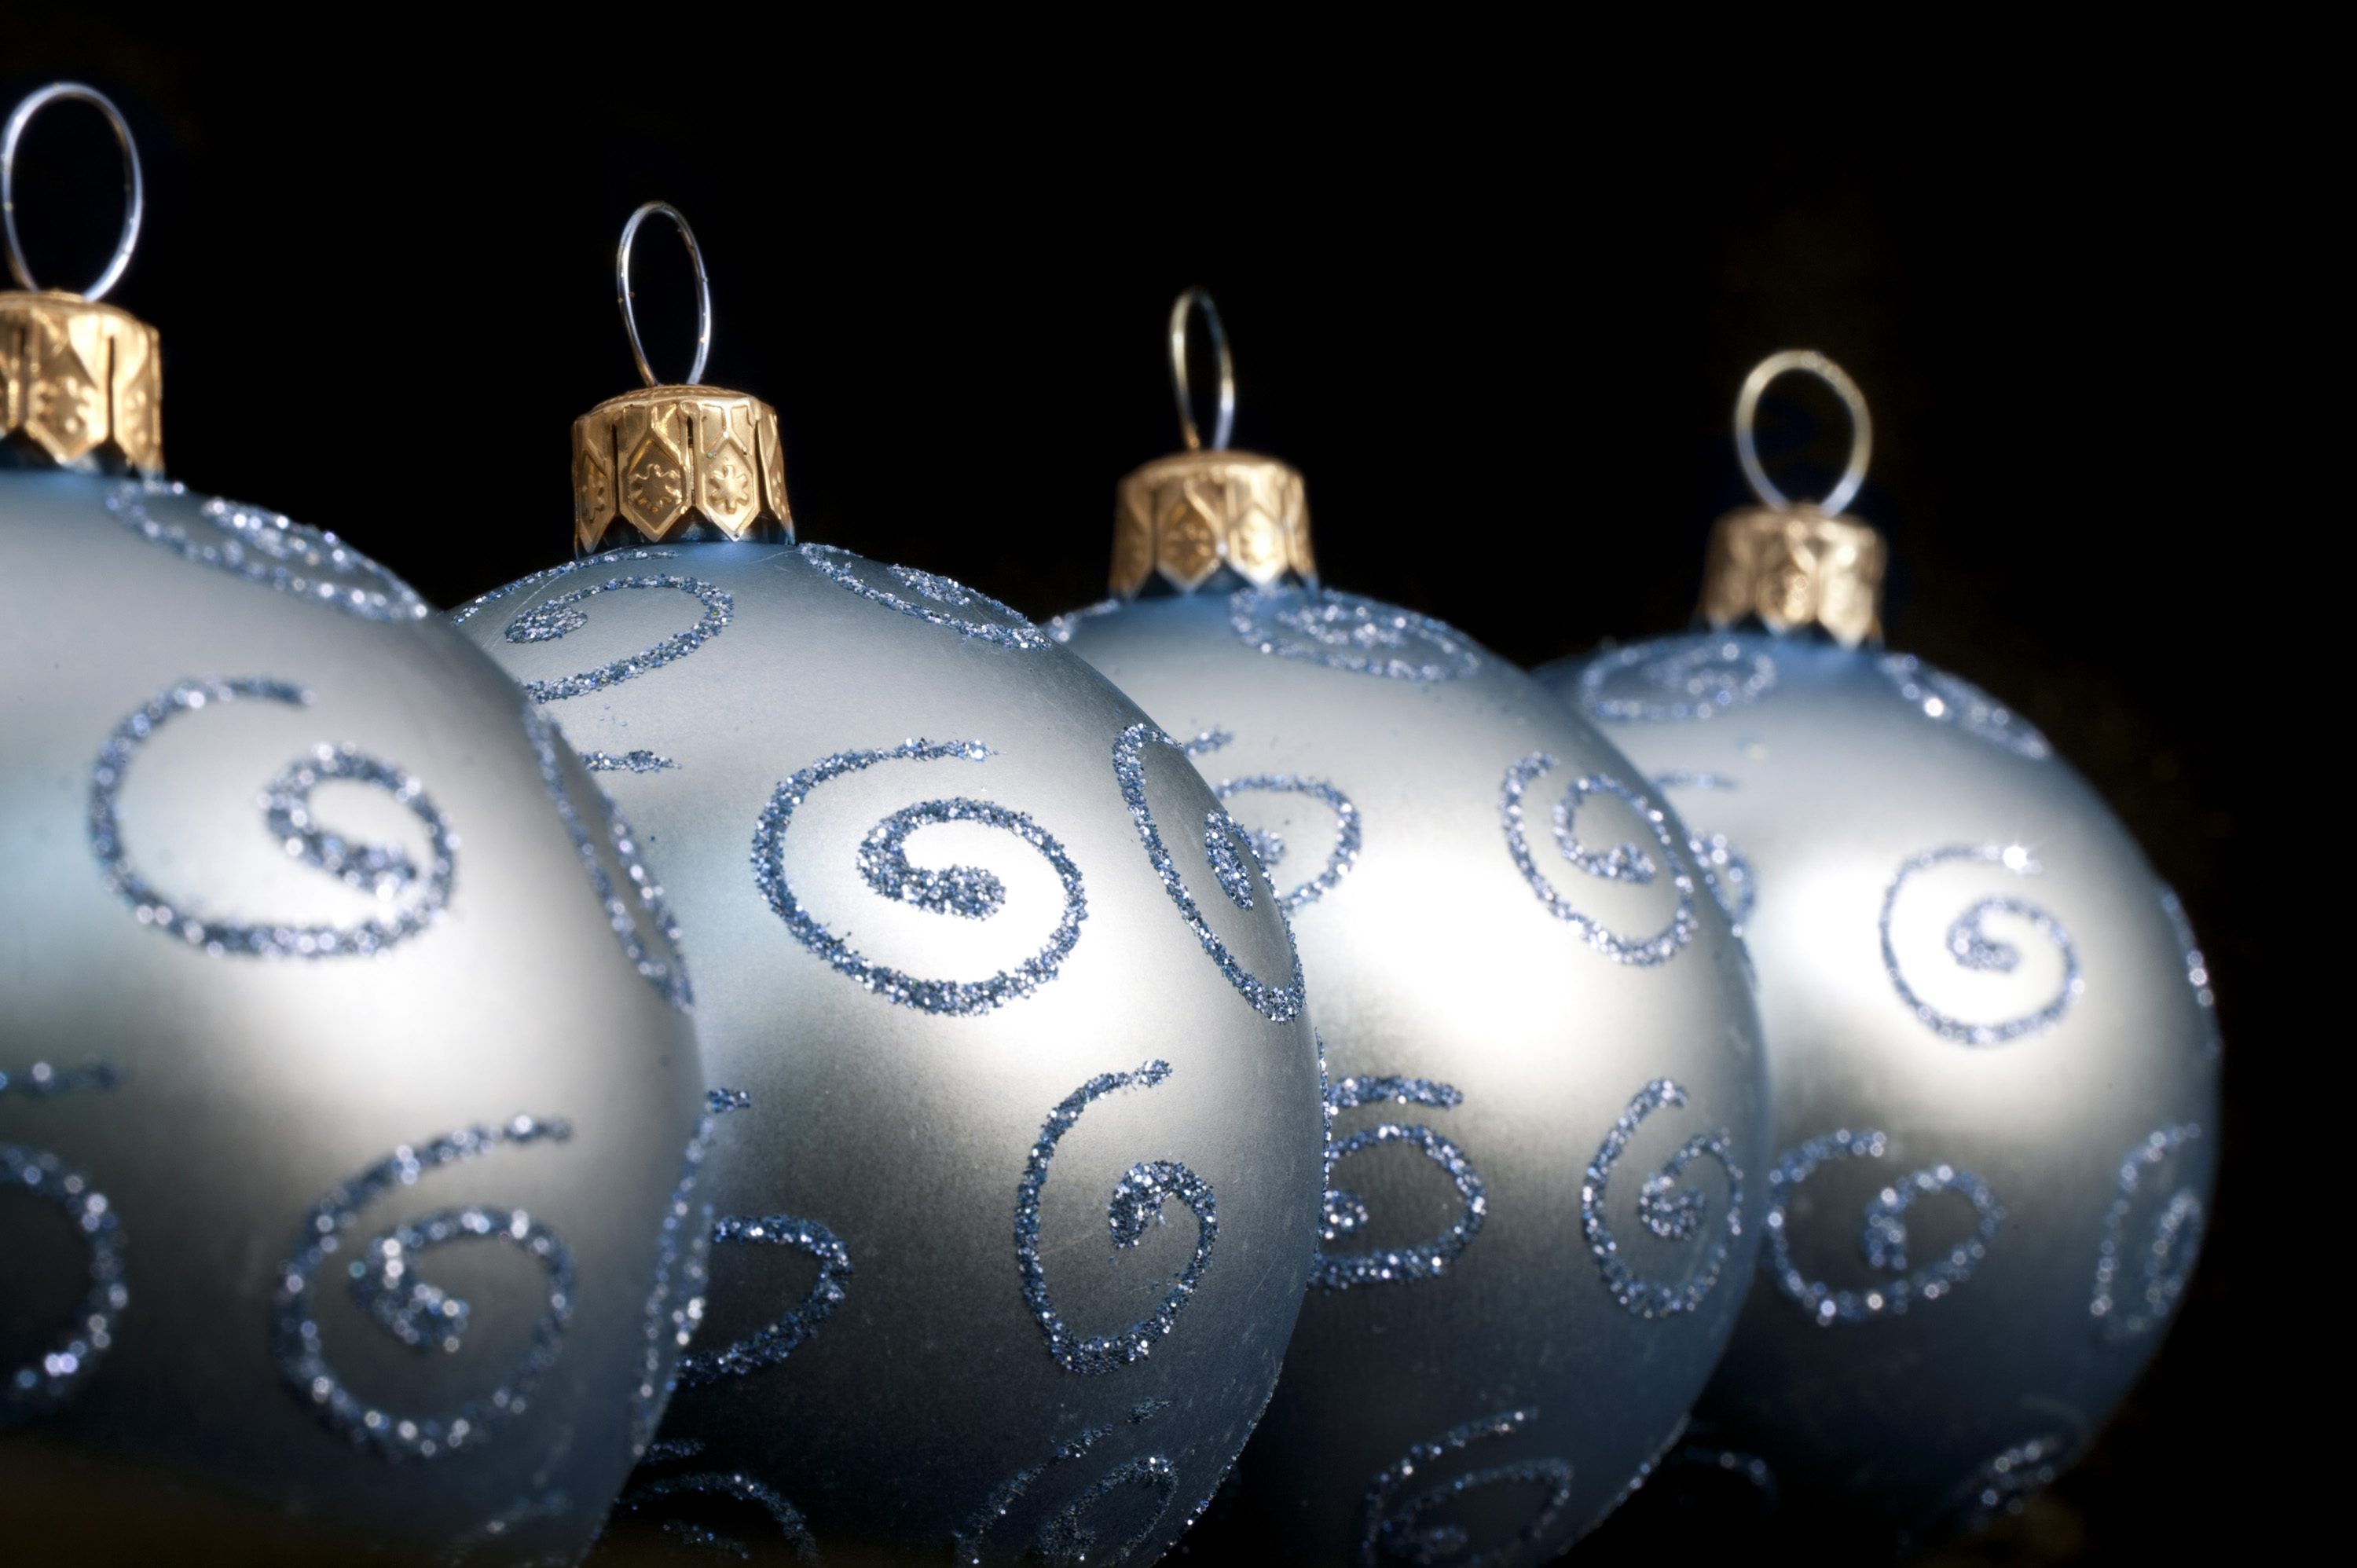 A receding row of pretty silvery blue Christmas balls decorated with glitter curlicues on a dark background